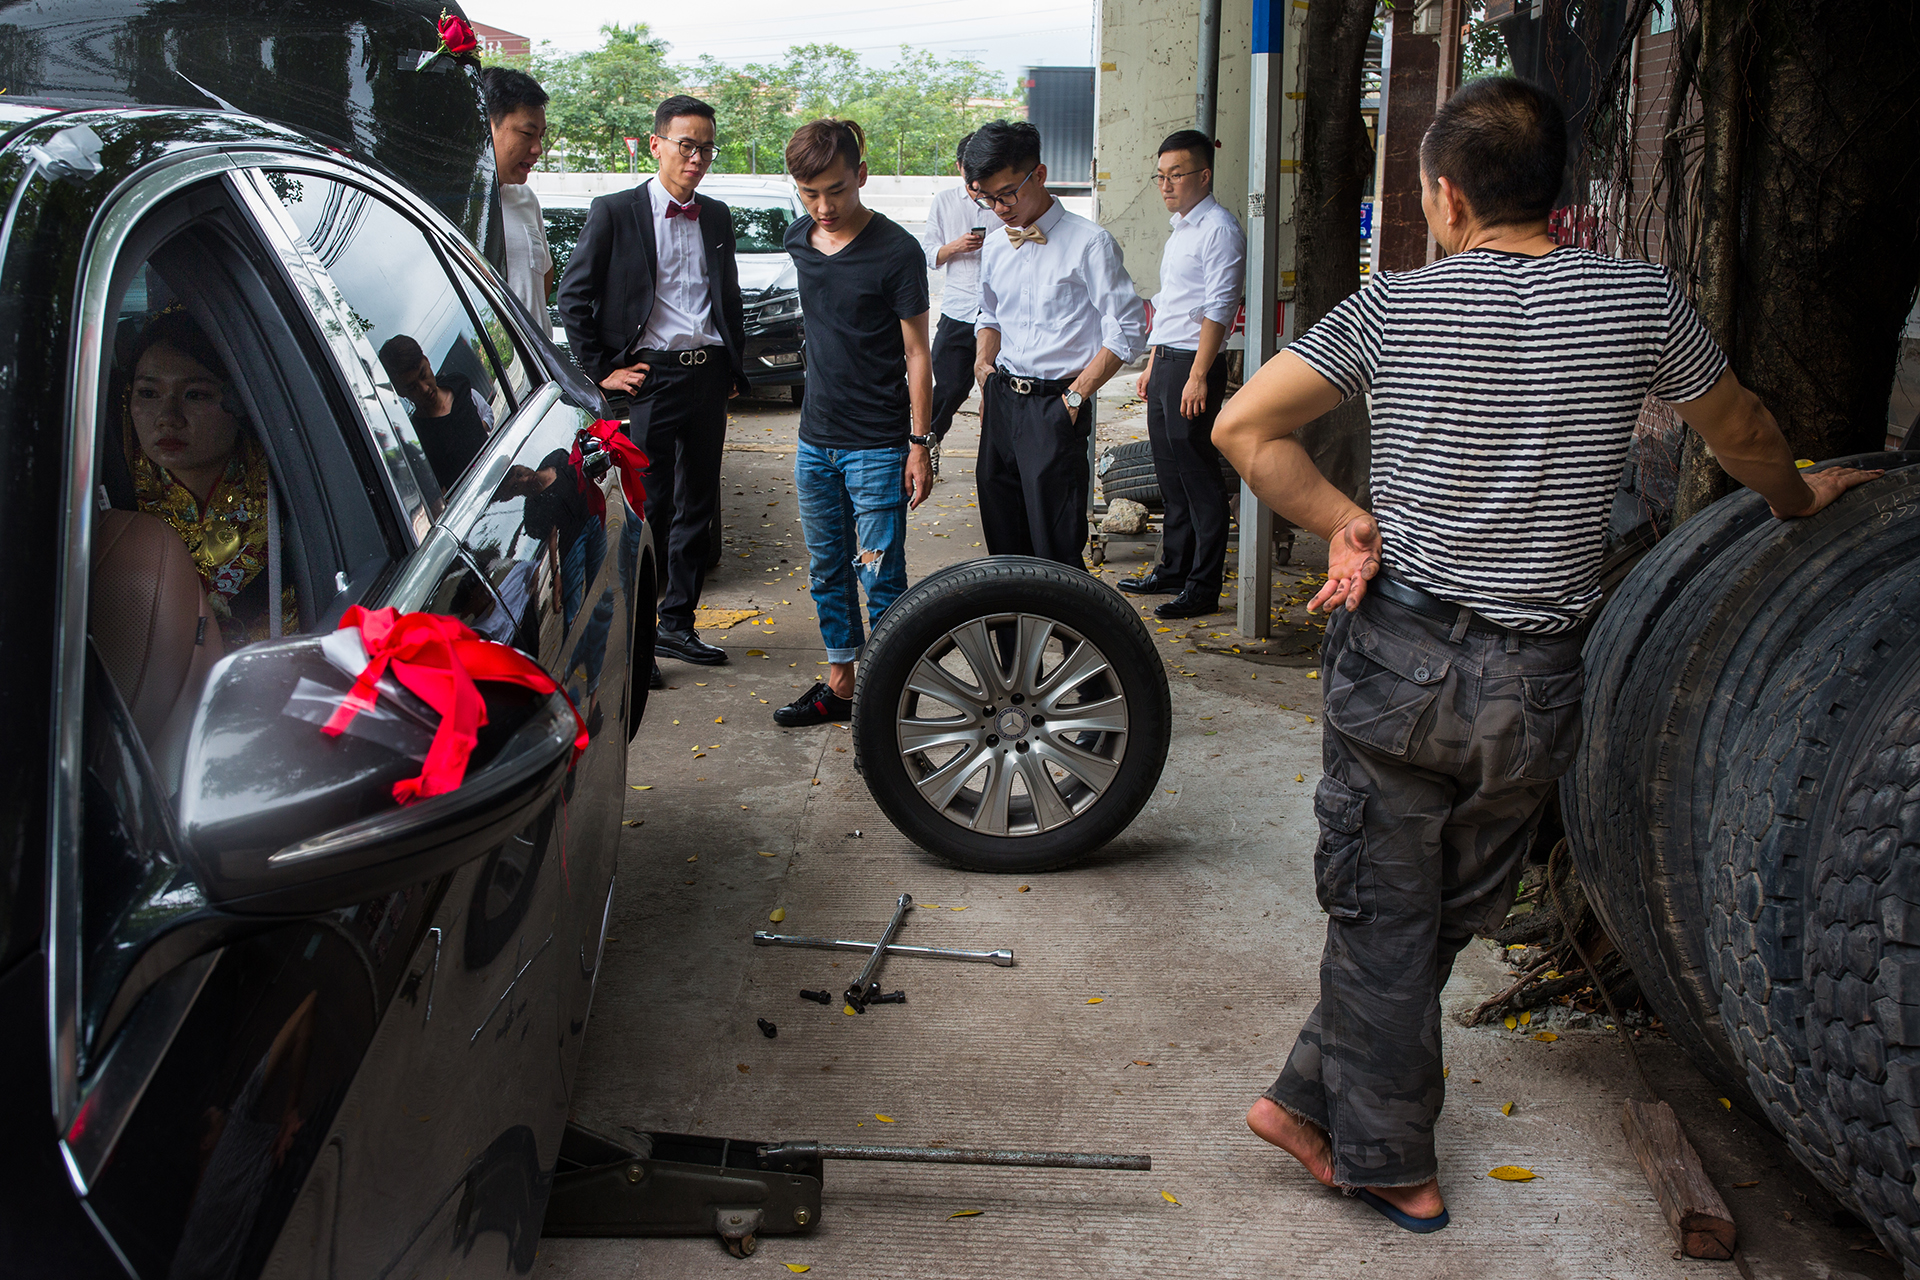 Wedding Photojournalism - Groomsmen take a car to a mechanic to change a tire in this photo taken by an award-winning wedding photojournalist.